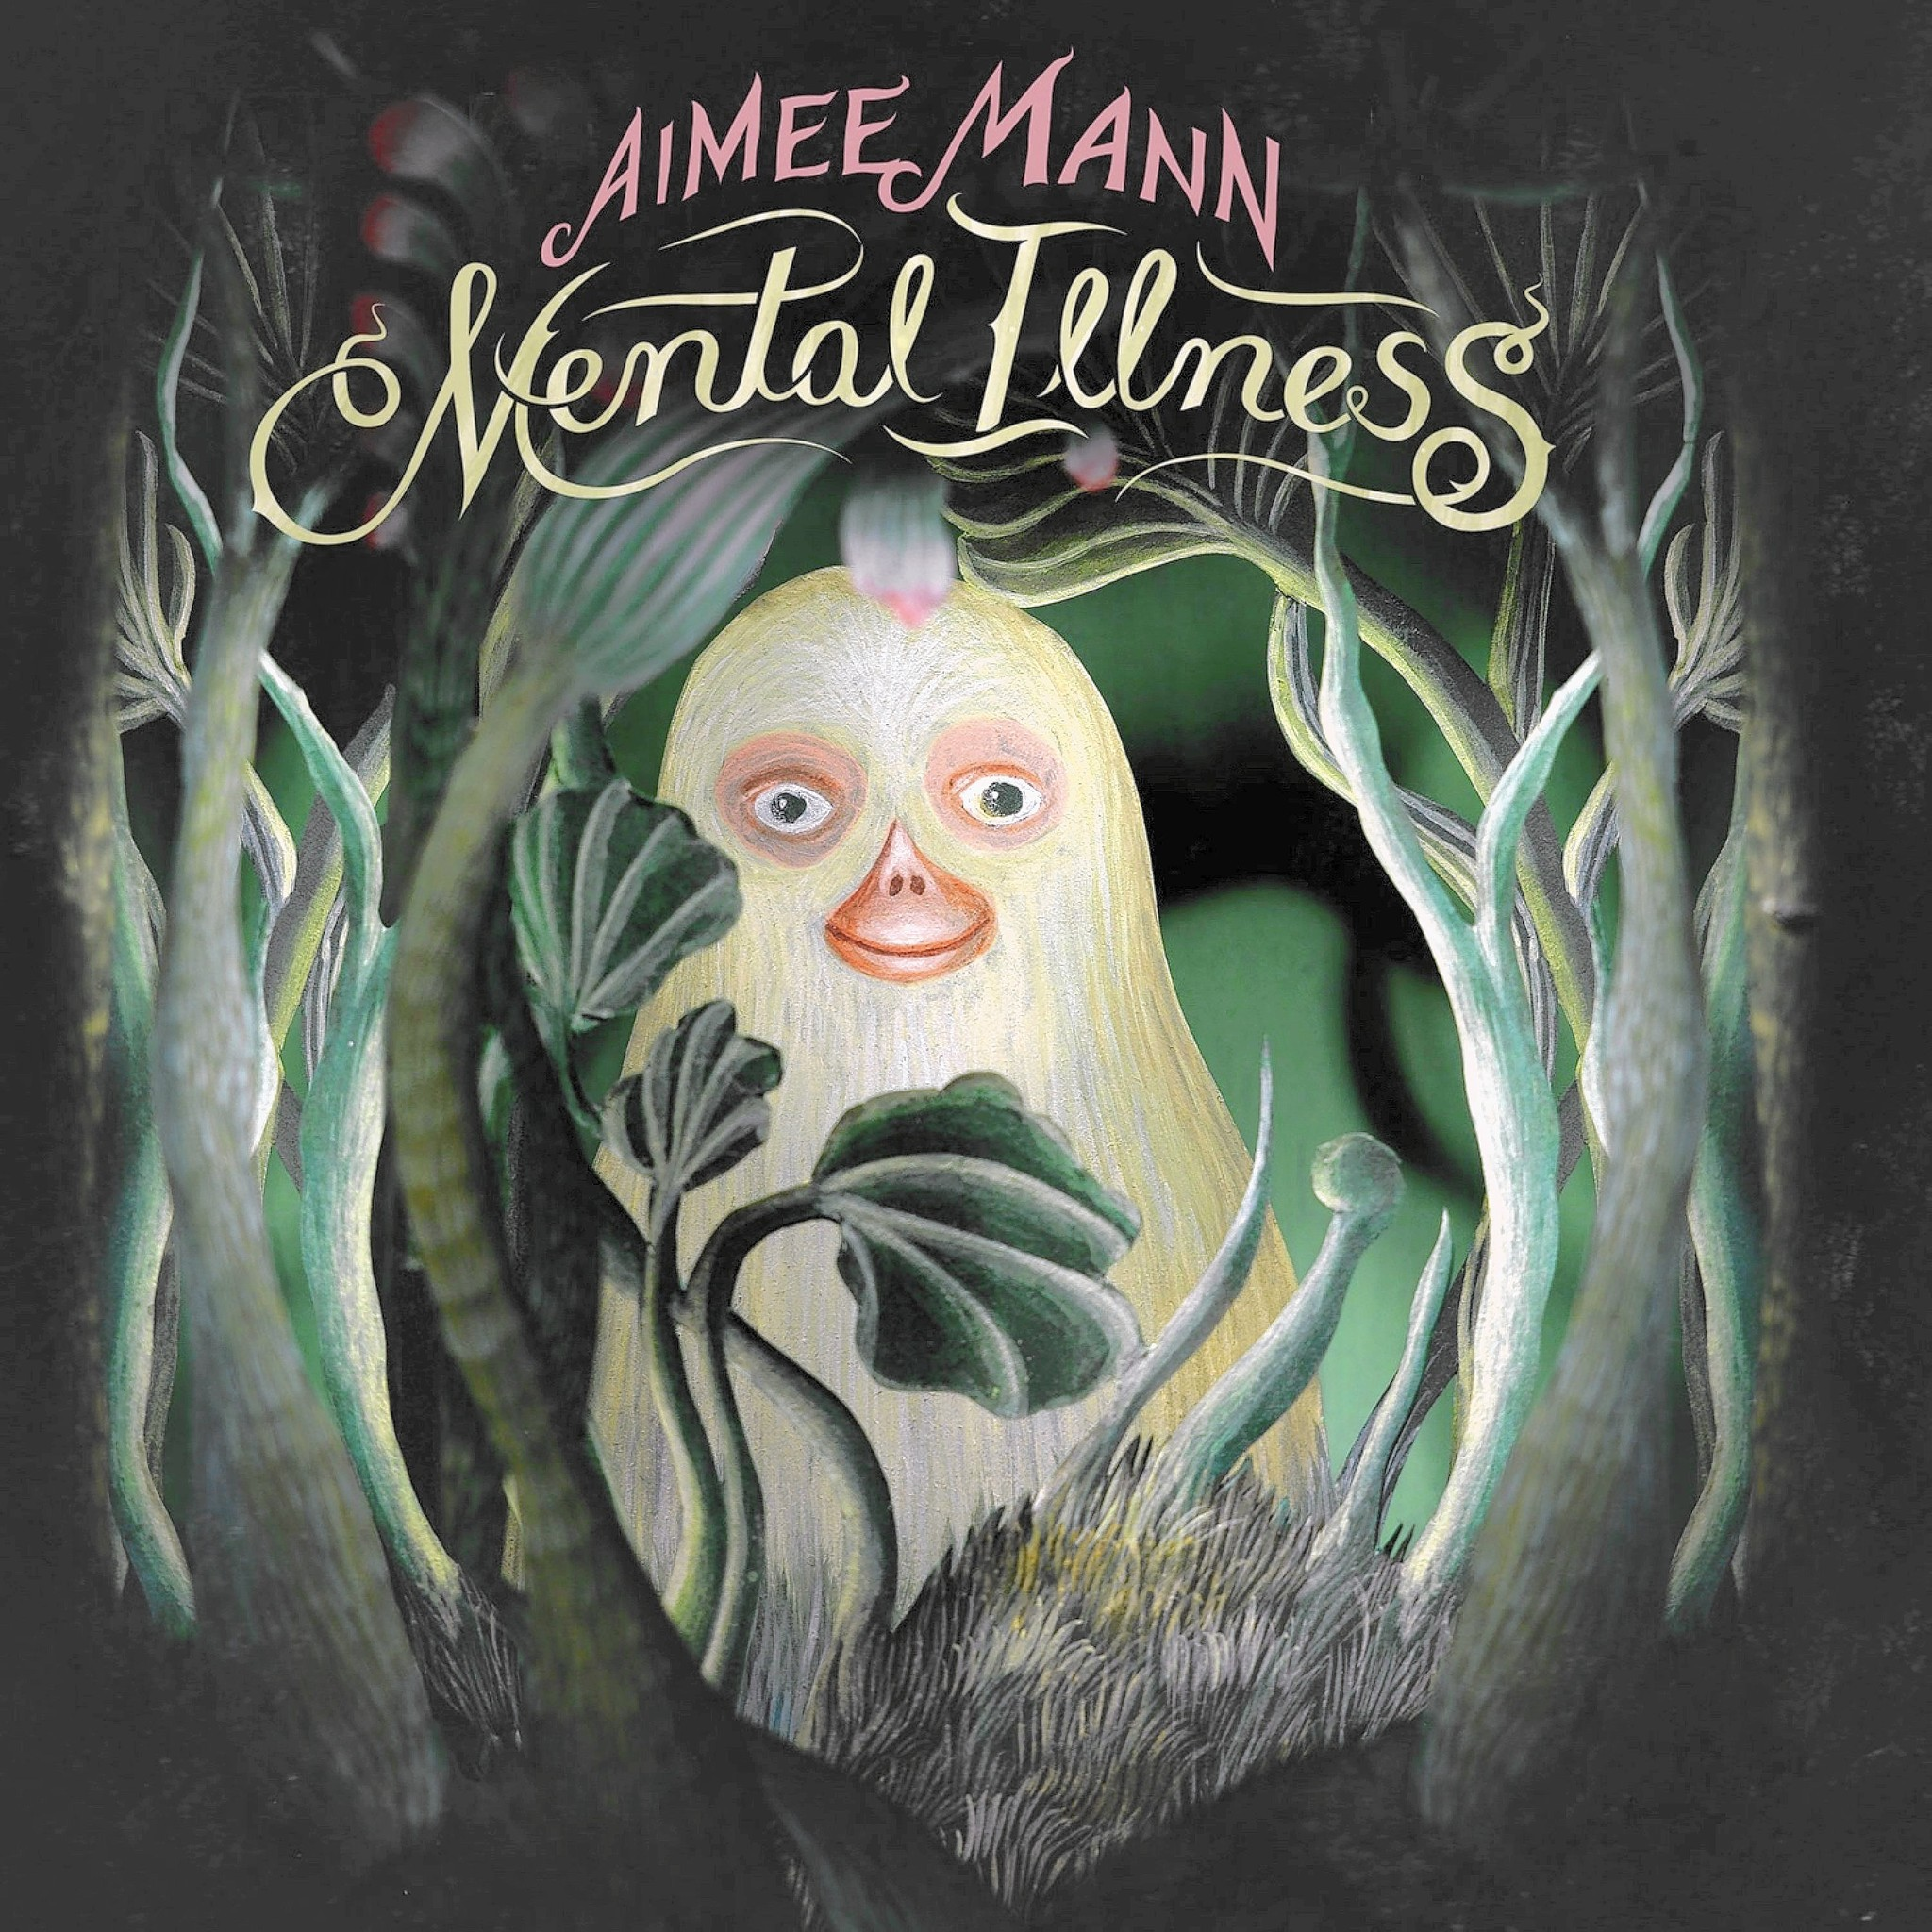 sc-aimee-mann-mental-illness-review-20170331.jpg